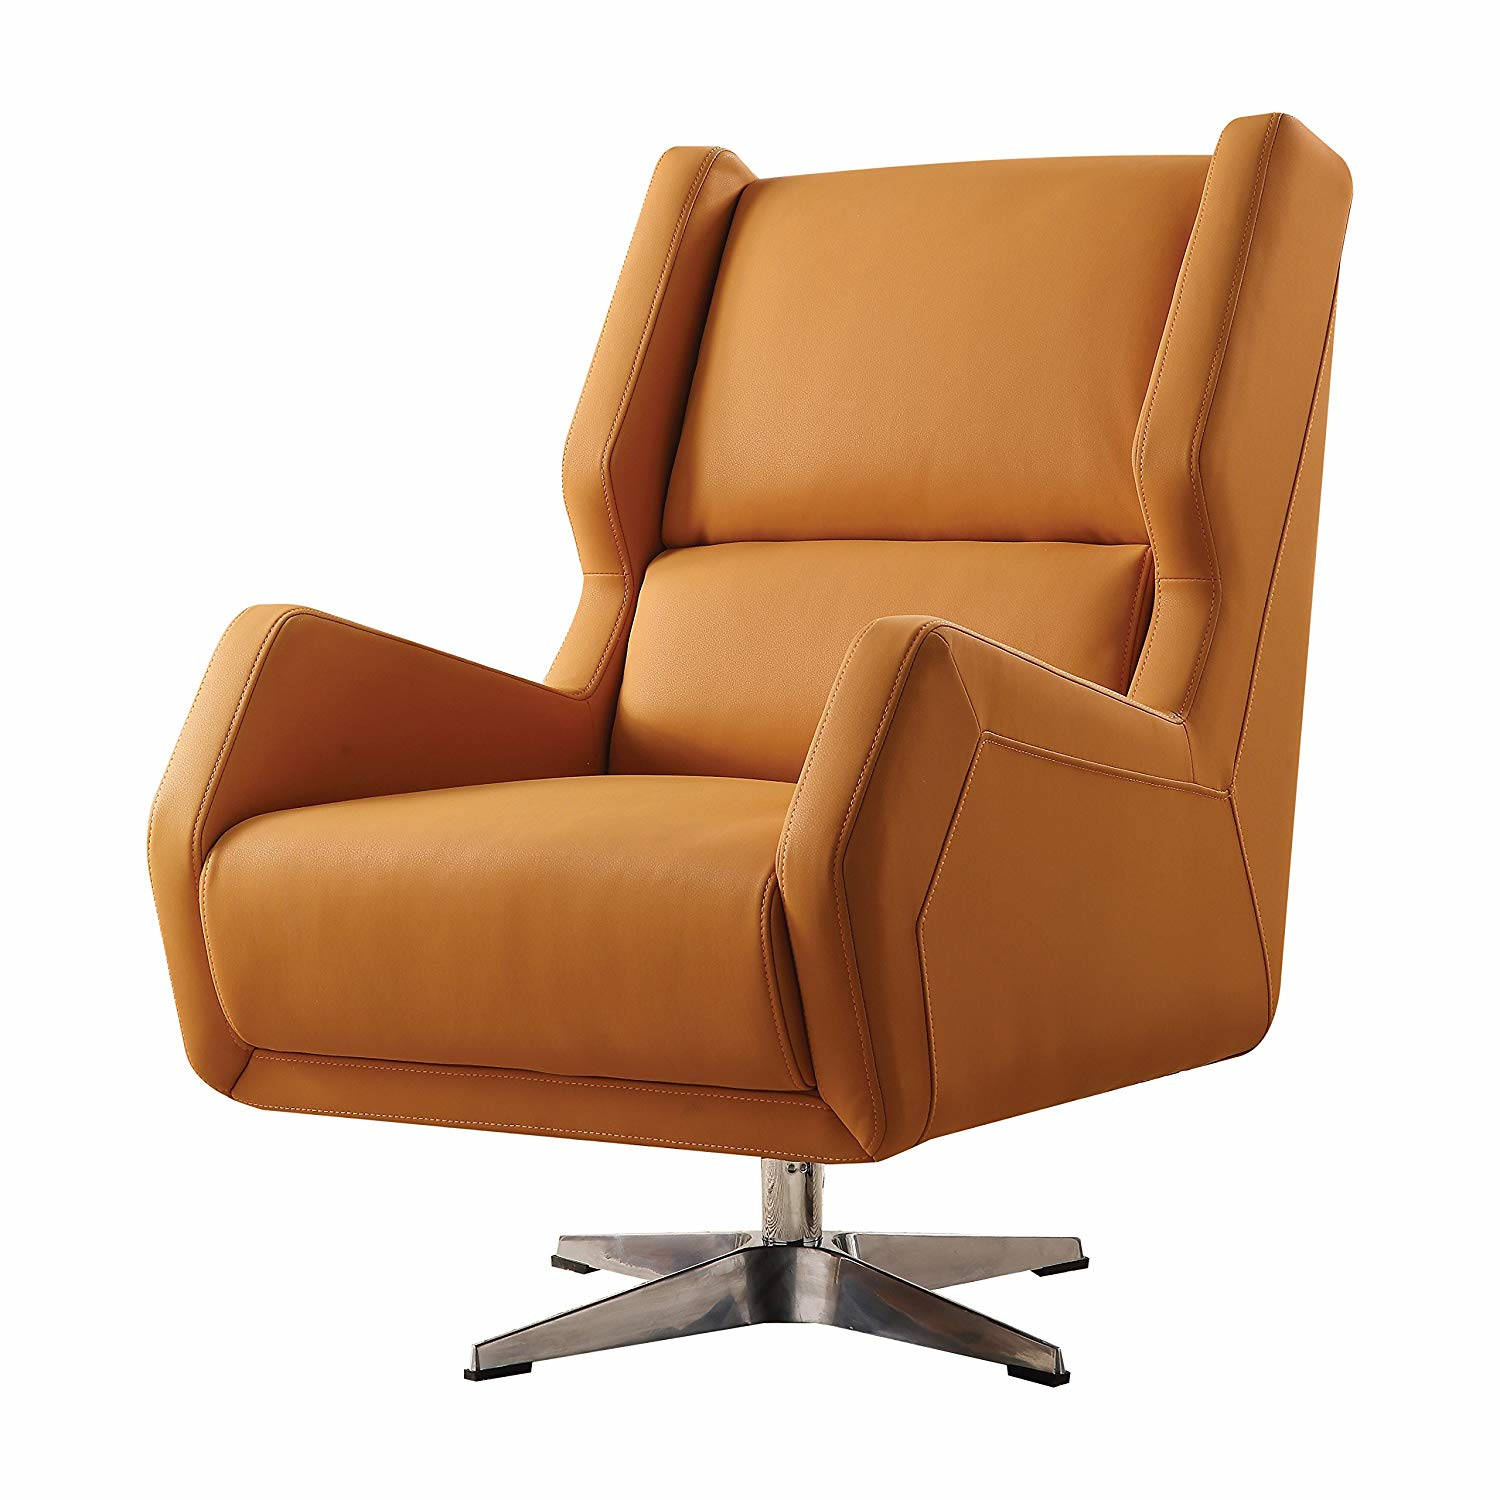 Astonishing Acme Furniture Eudora Ii Orange Accent Chair Gmtry Best Dining Table And Chair Ideas Images Gmtryco